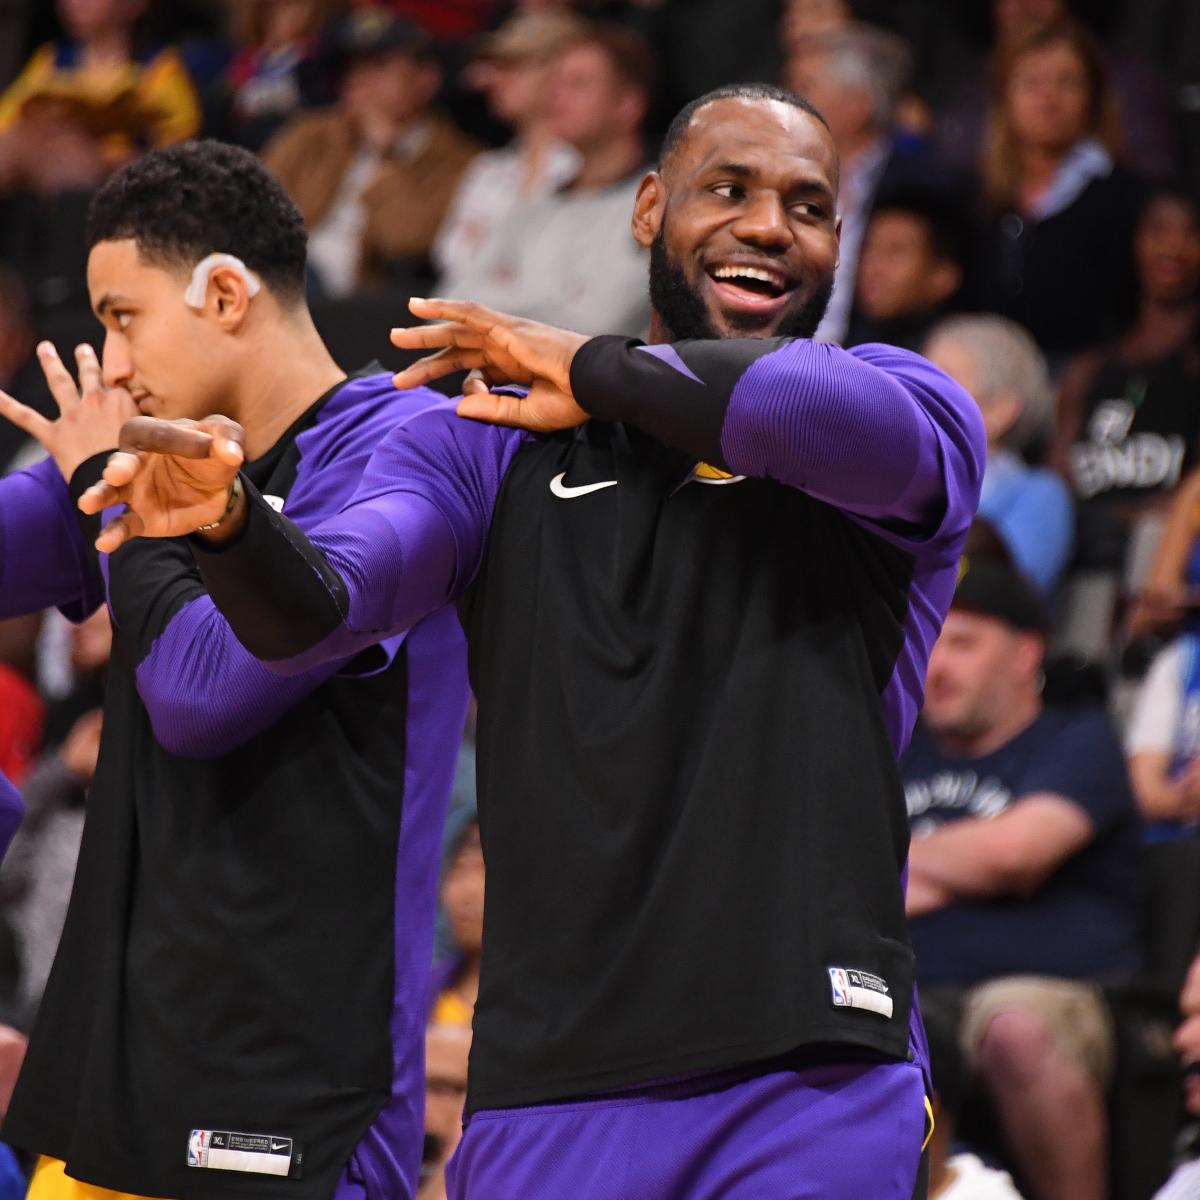 Rockets Vs Warriors Odds 2018: Updated Odds For Lakers Vs. Warriors And Entire NBA